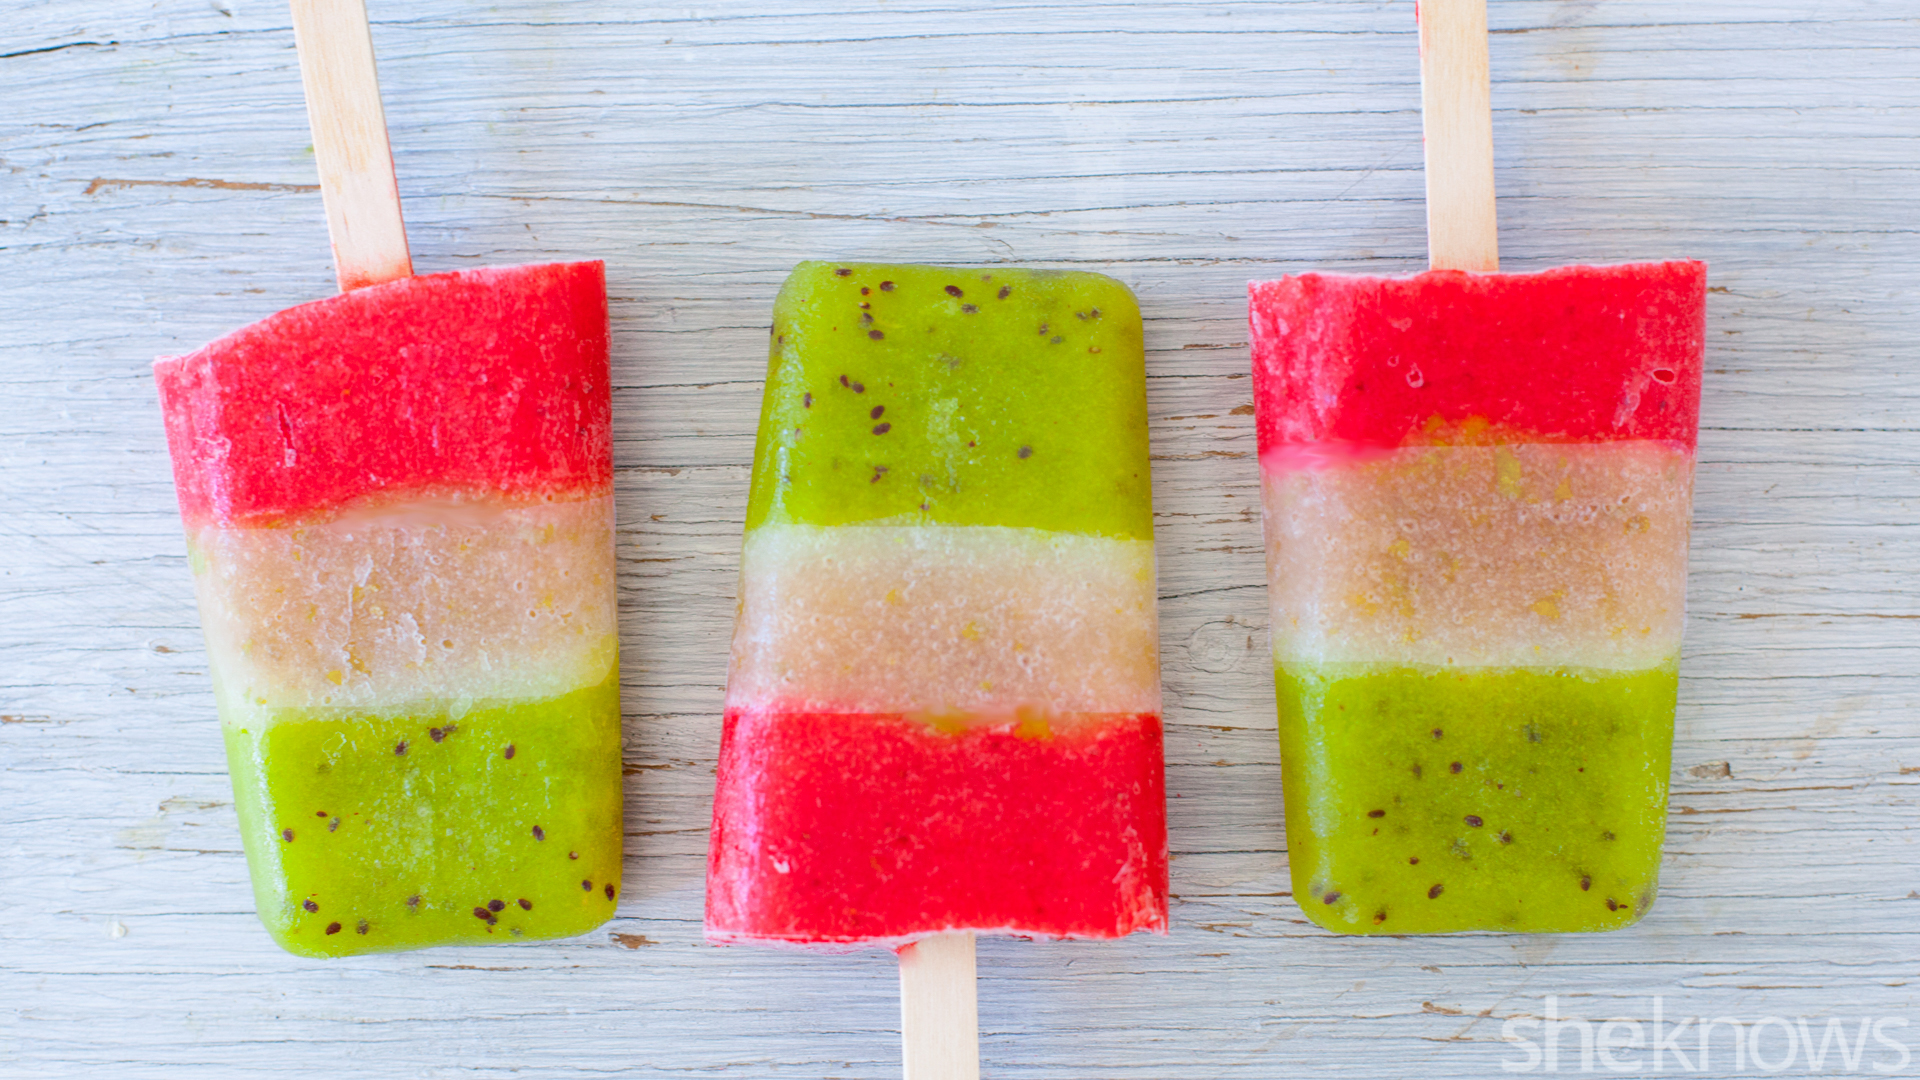 These triple-layer margarita ice pops make a tasty adults-only treat